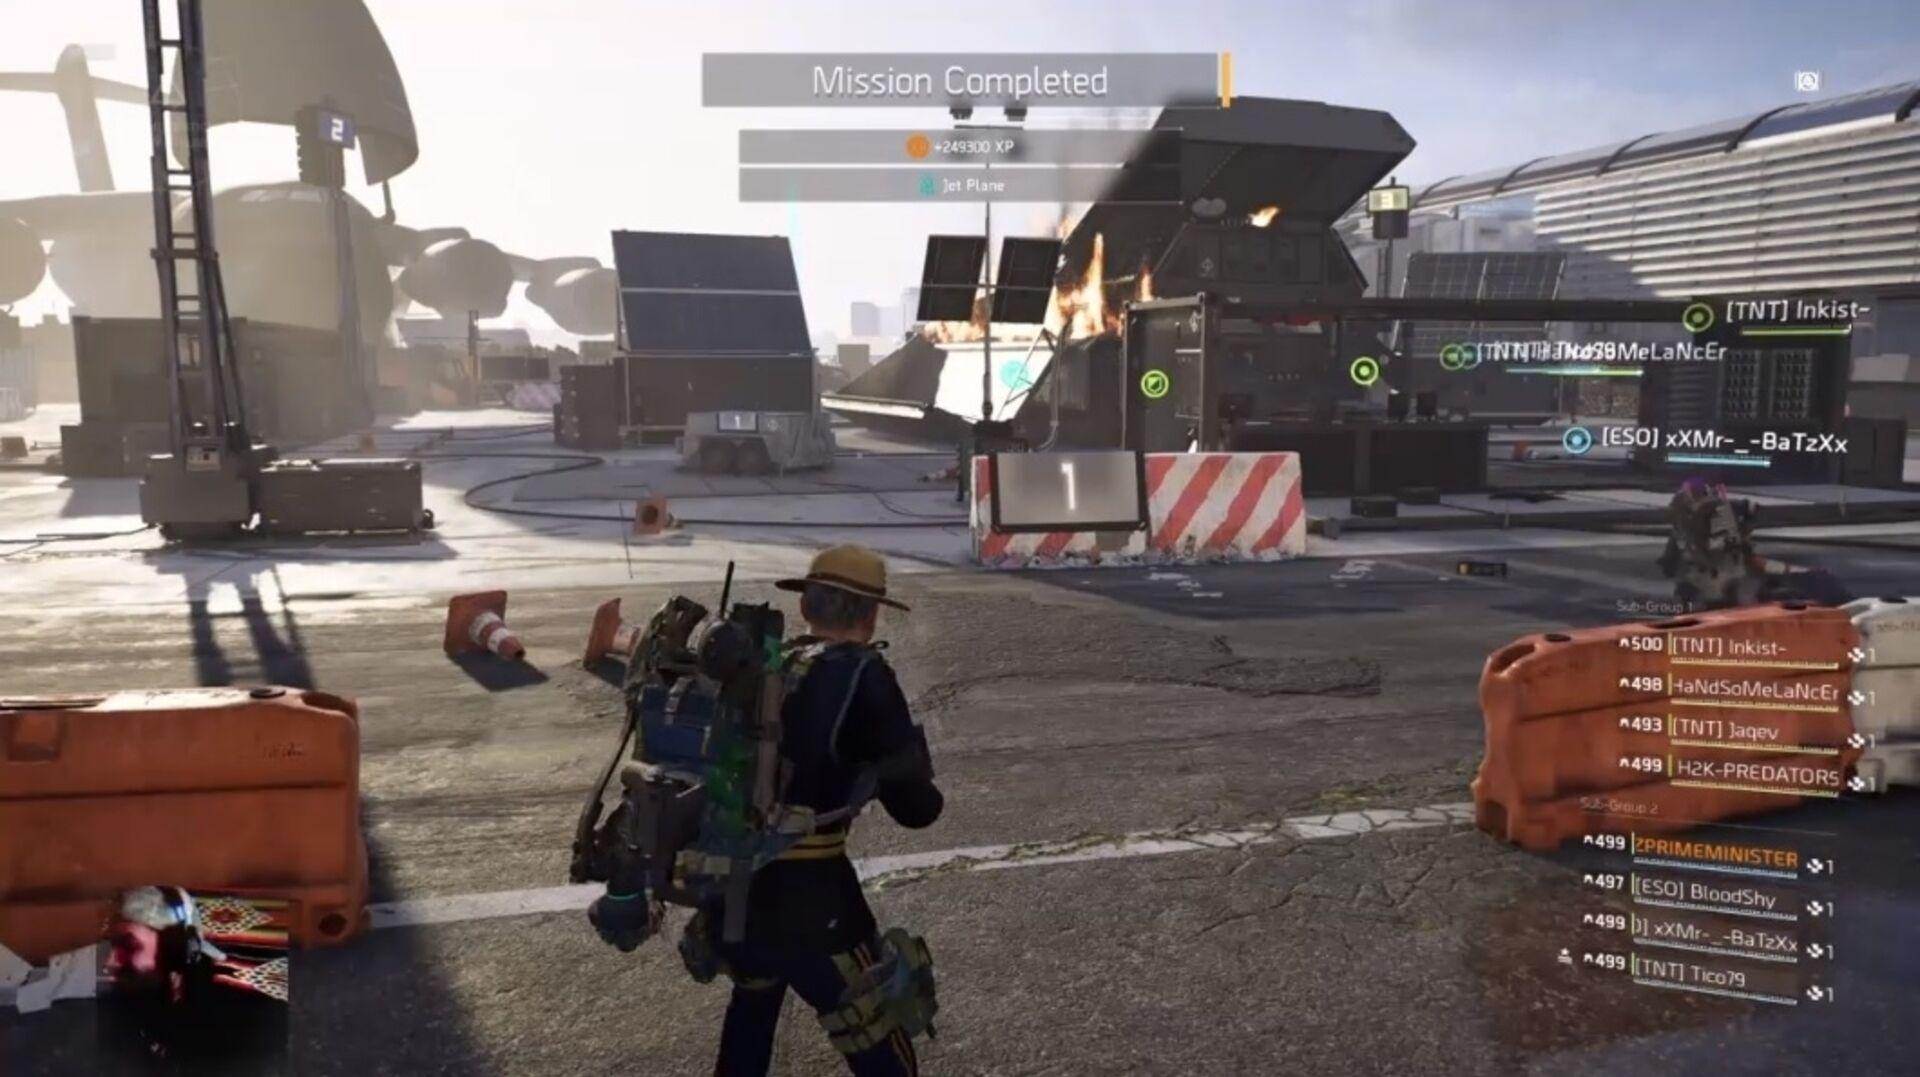 Ubisoft considering The Division 2 raid difficulty tweaks